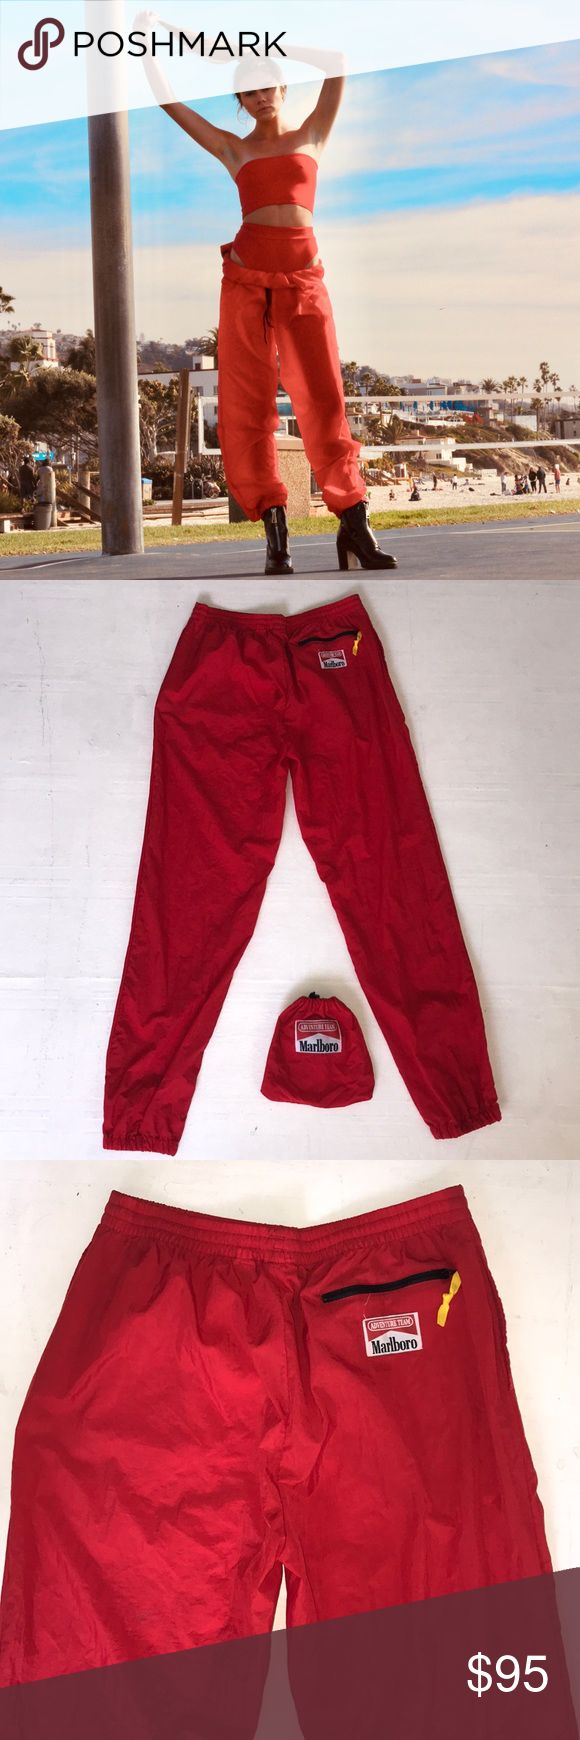 MARLBORO ADVENTURE red Pants mens size large Perfect condition! Message me with any questions! Happy Shopping! Vintage Pants Track Pants & Joggers